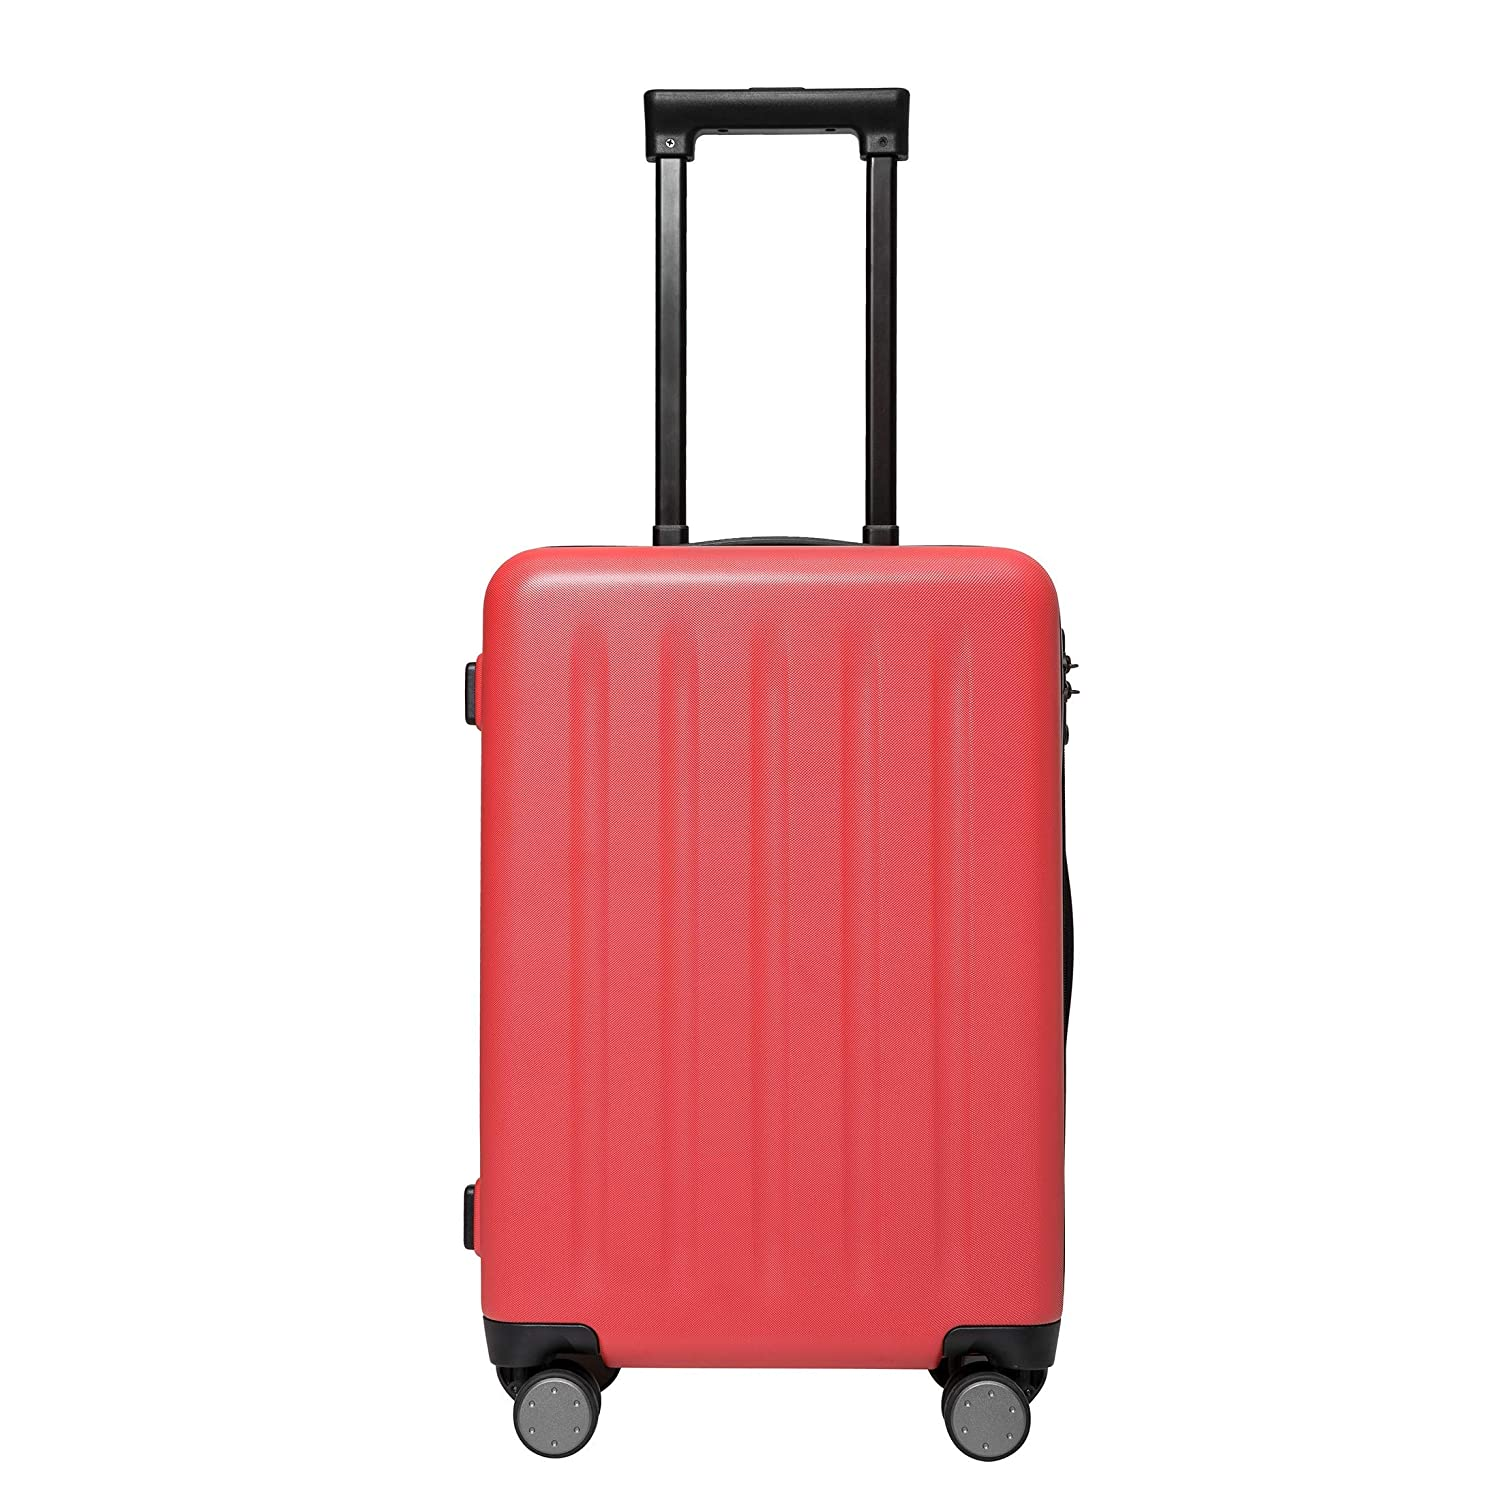 MI Polycarbonate Hardsided Cabin Luggage 20 (Red) – 55cms